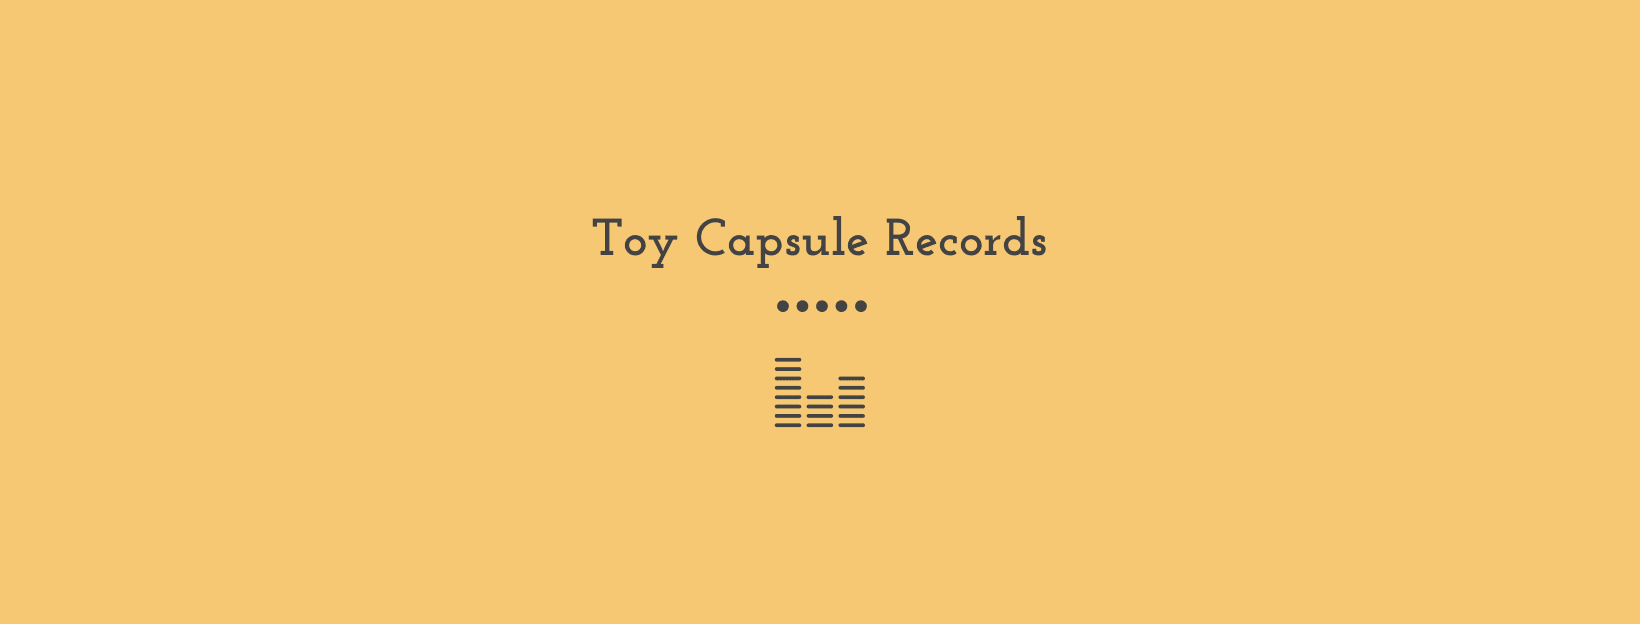 Toy Capsule Records